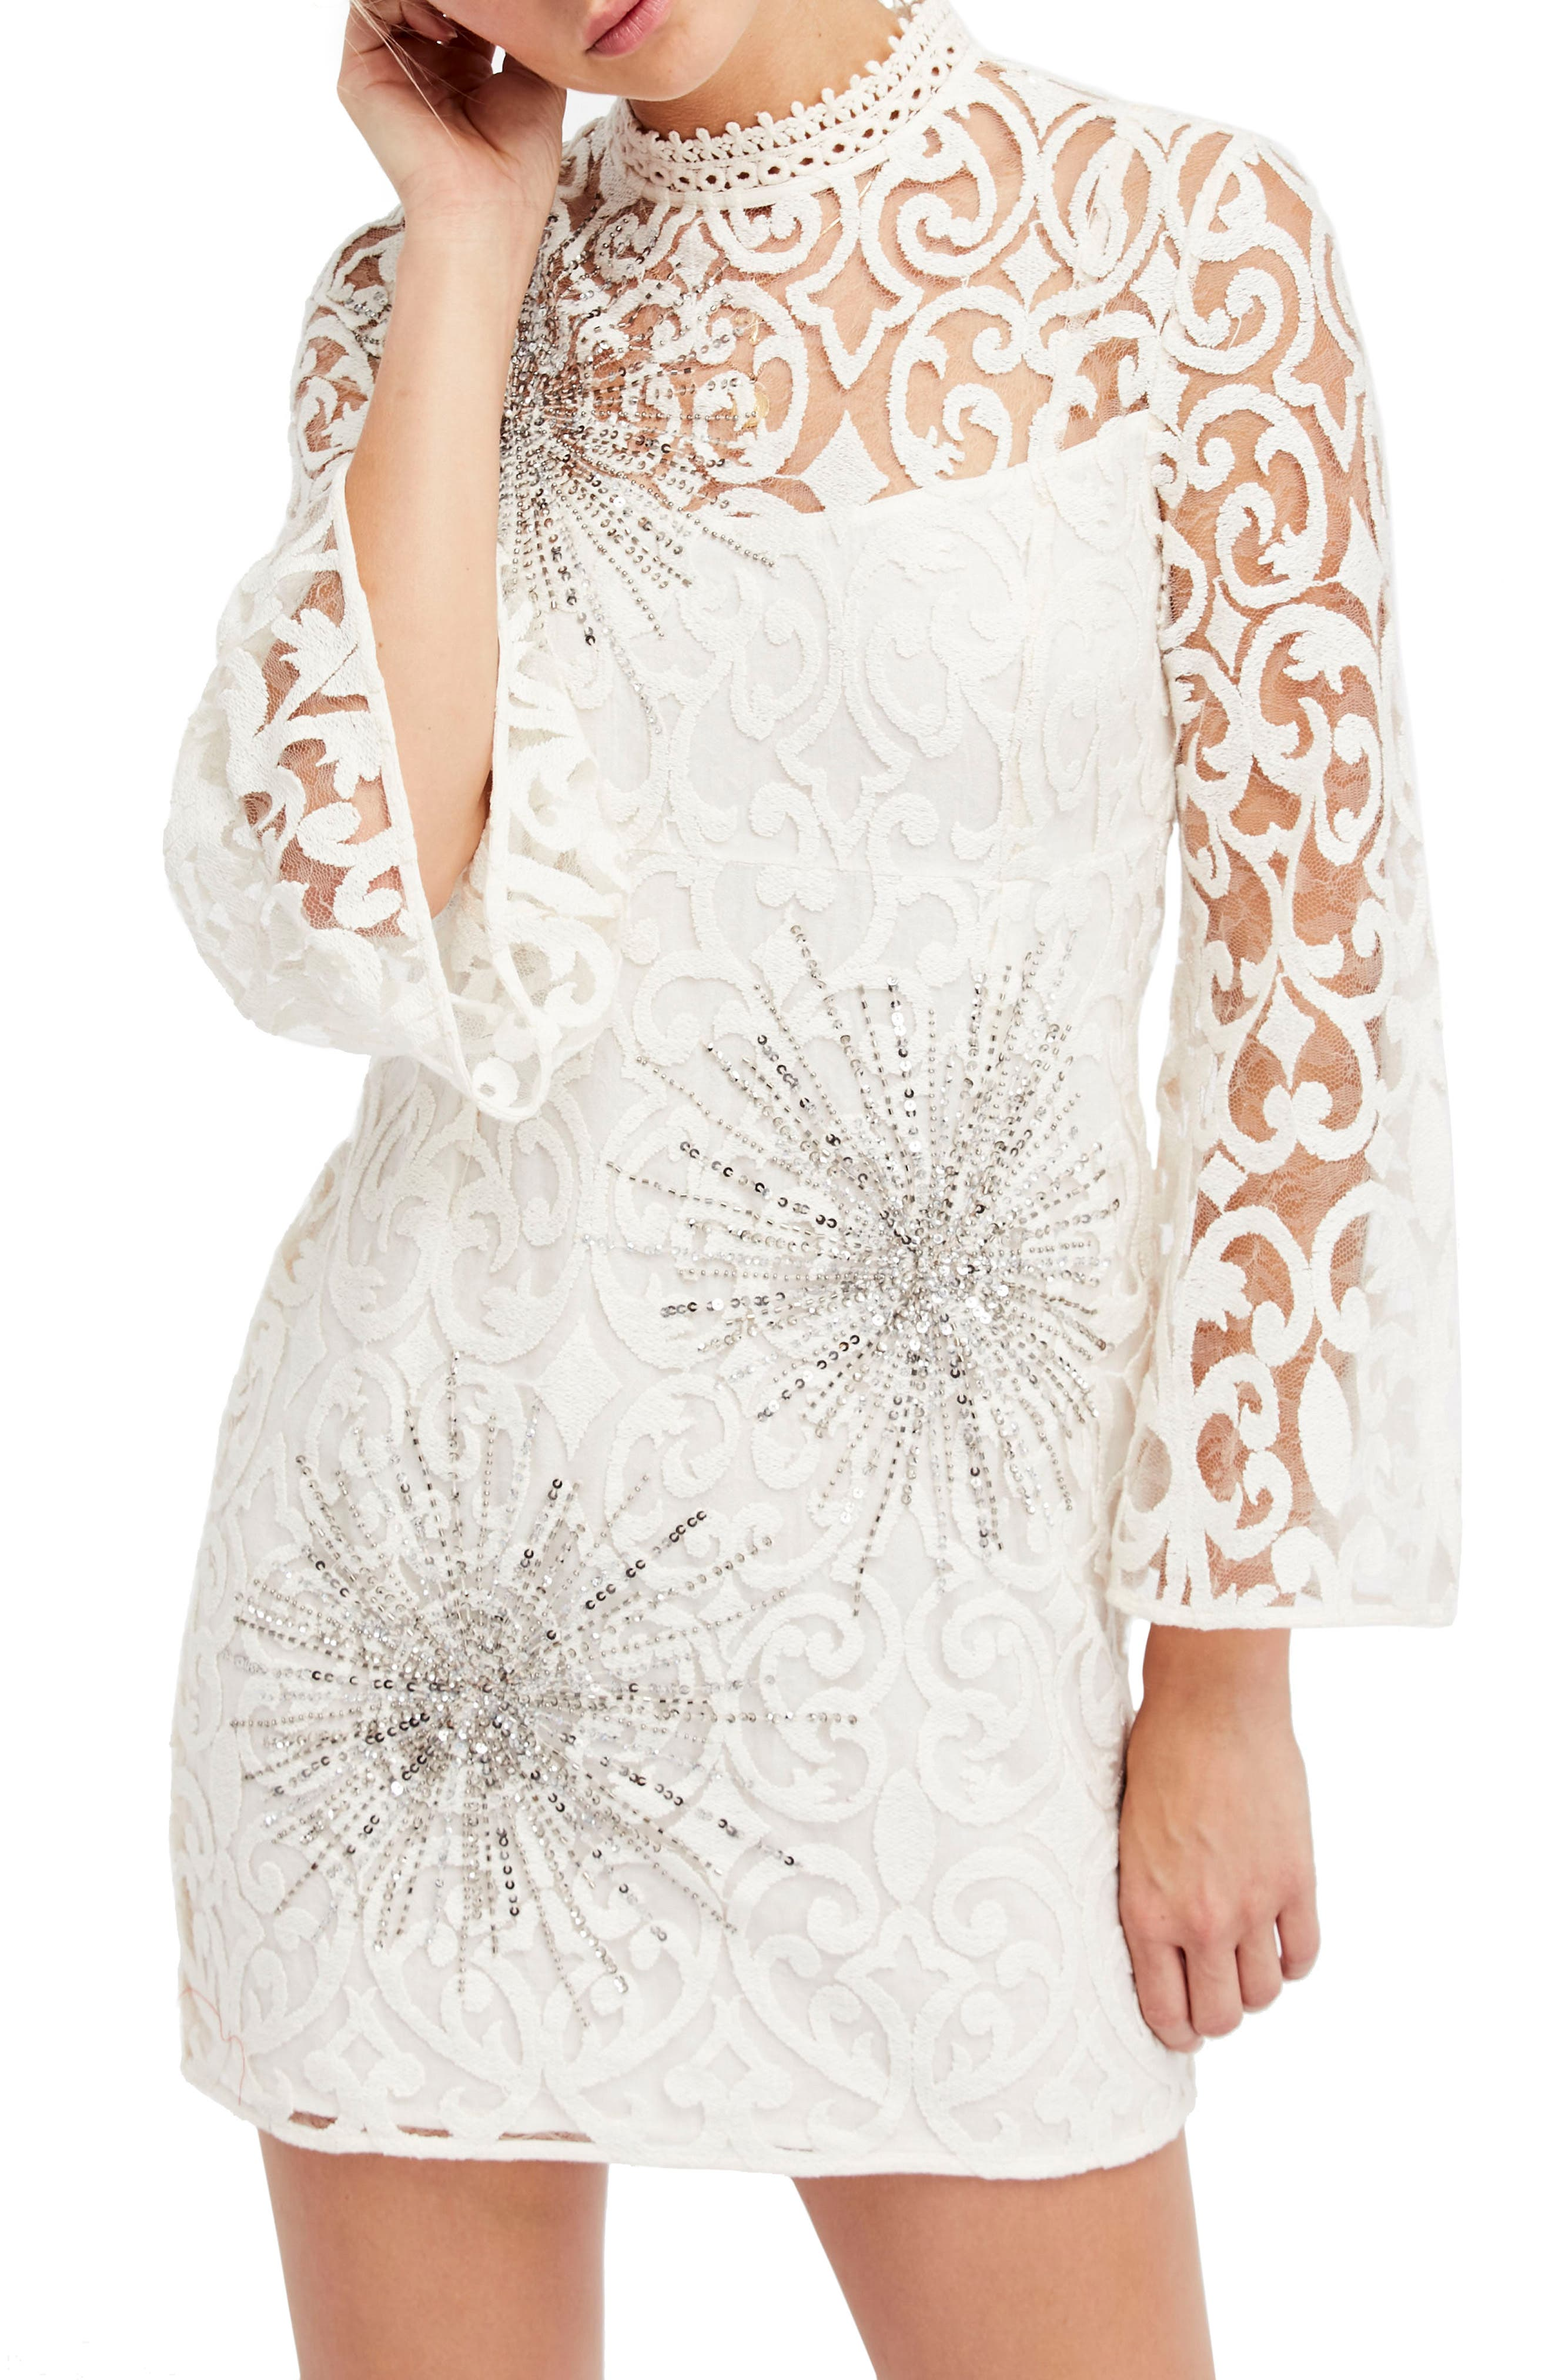 North Star Minidress,                         Main,                         color, Ivory